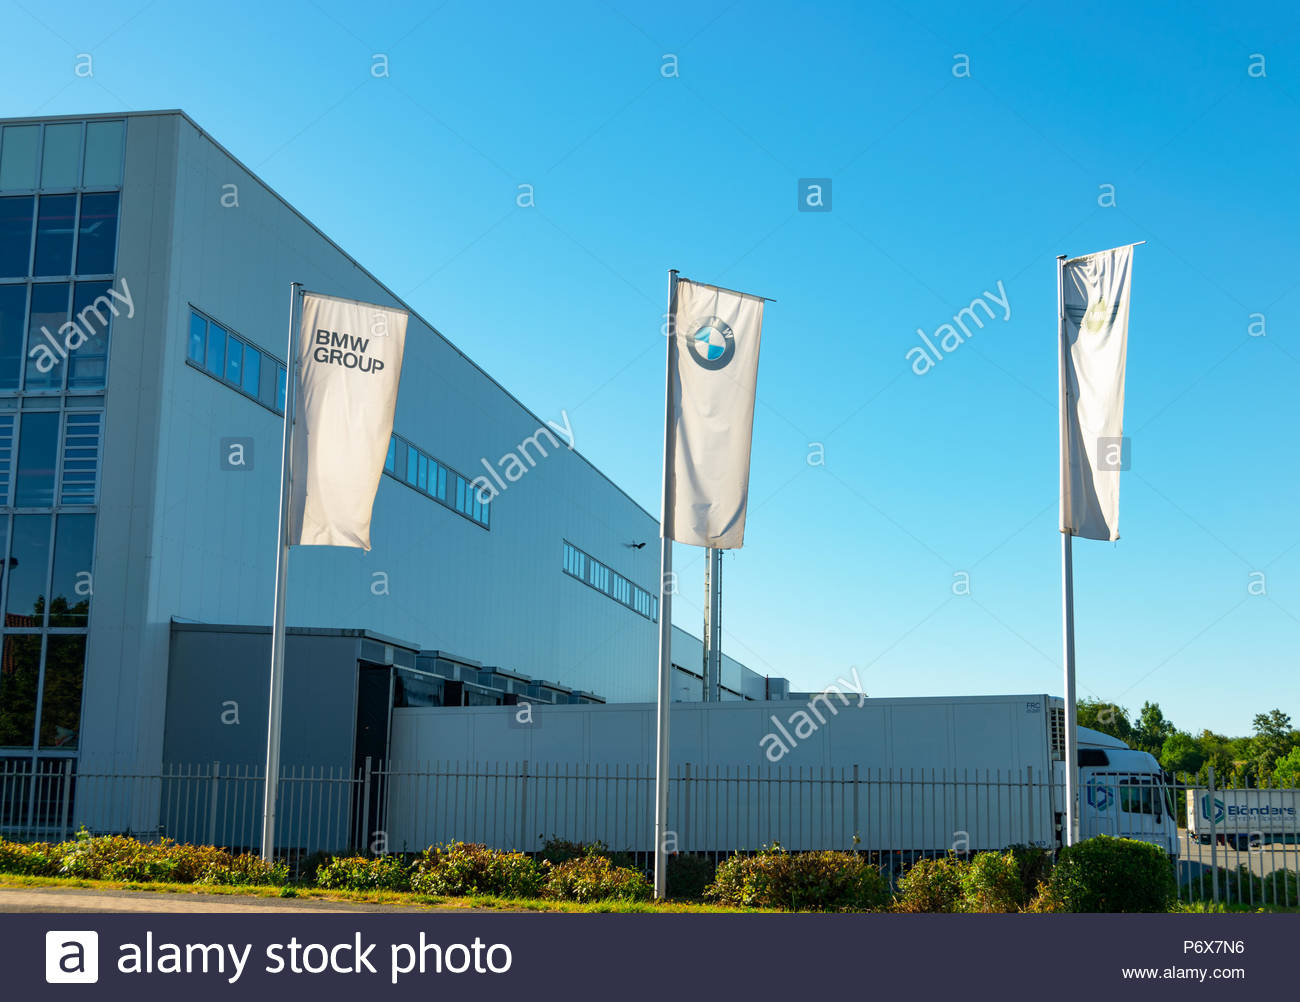 bmw factory germany stock photos bmw factory germany stock images alamy. Black Bedroom Furniture Sets. Home Design Ideas